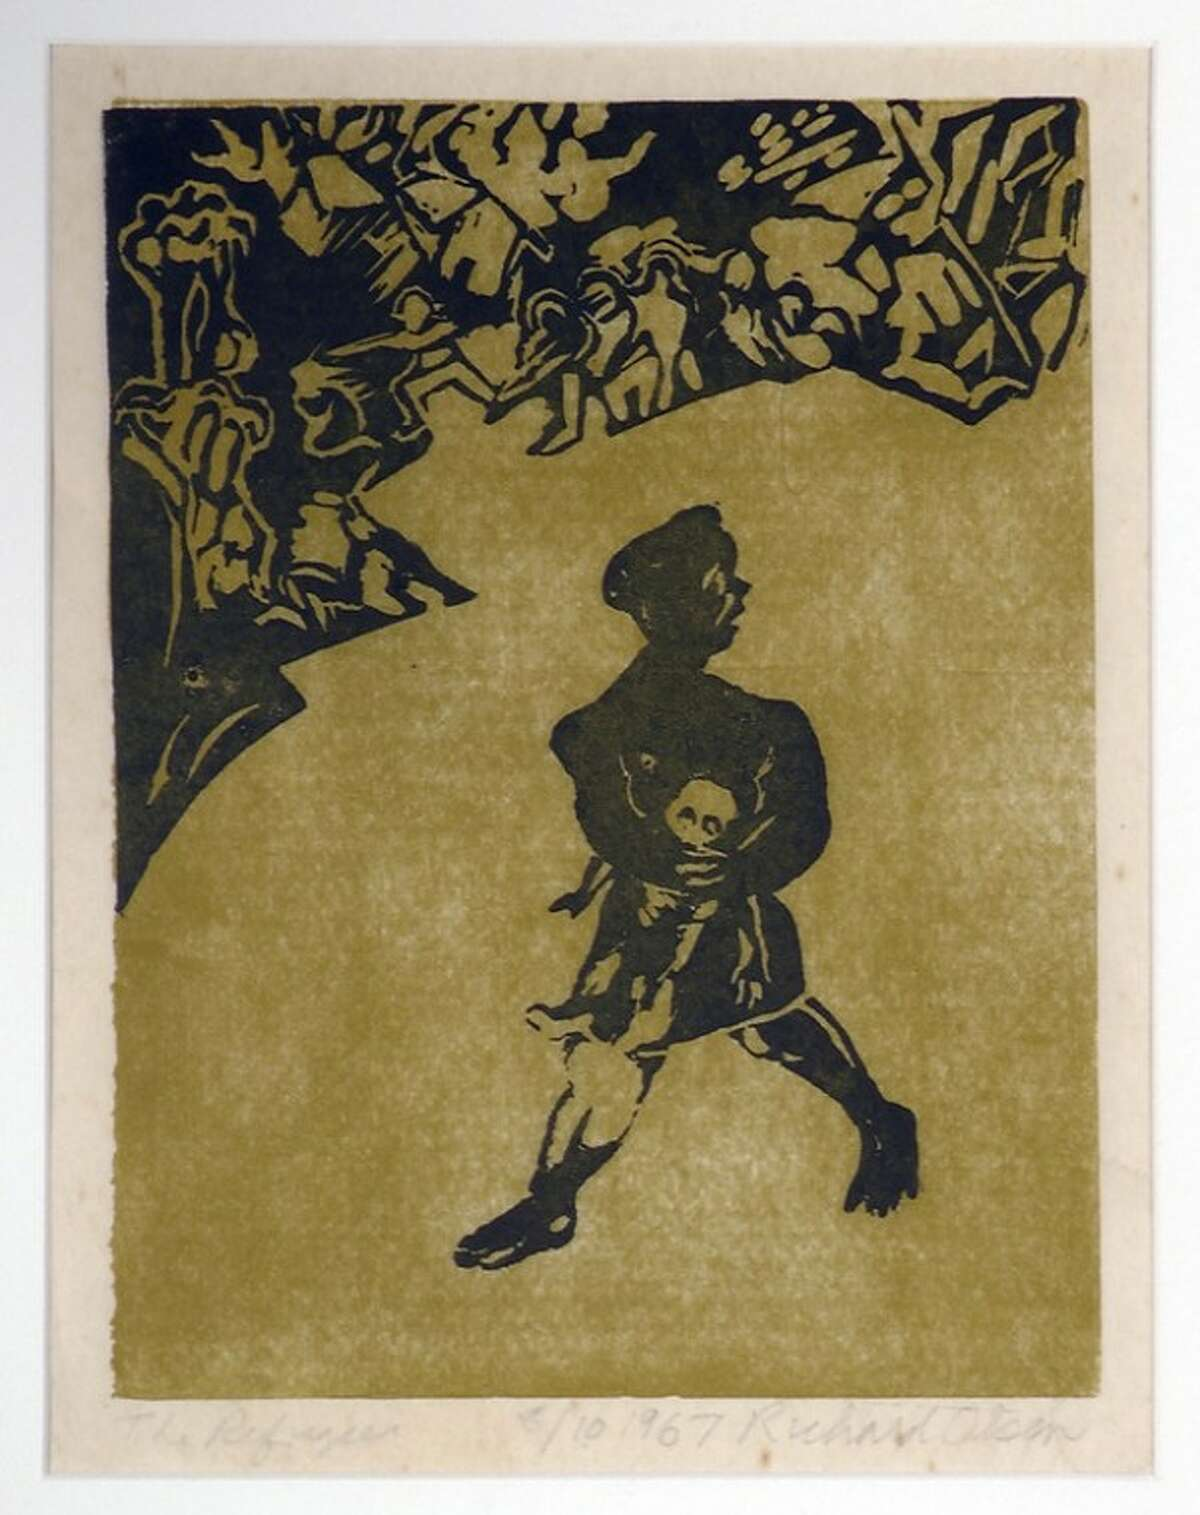 """ADVANCE FOR USE SUNDAY, NOV. 11, 2012 AND THEREAFTER - This undated image provided by the National Veterans Art Museum shows """"The Refugee"""" by Vietnam veteran and artist Richard Olsen. Olsen created the yellow-and-black linocut after returning home following a year's tour as an Army helicopter pilot with the 33rd Transportation Company in Vietnam. He came back in 1963, and the war in faraway Southeast Asia was not yet fully on America's radar, so producing these images was his way of sounding an alarm. """"It was like, 'Hey, you guys, there's a war going on,?'"""" Olsen says. """"Why make pictures of flowers? Why not make pictures of war?"""" (AP Photo/National Veterans Art Museum, Richard Olsen)"""